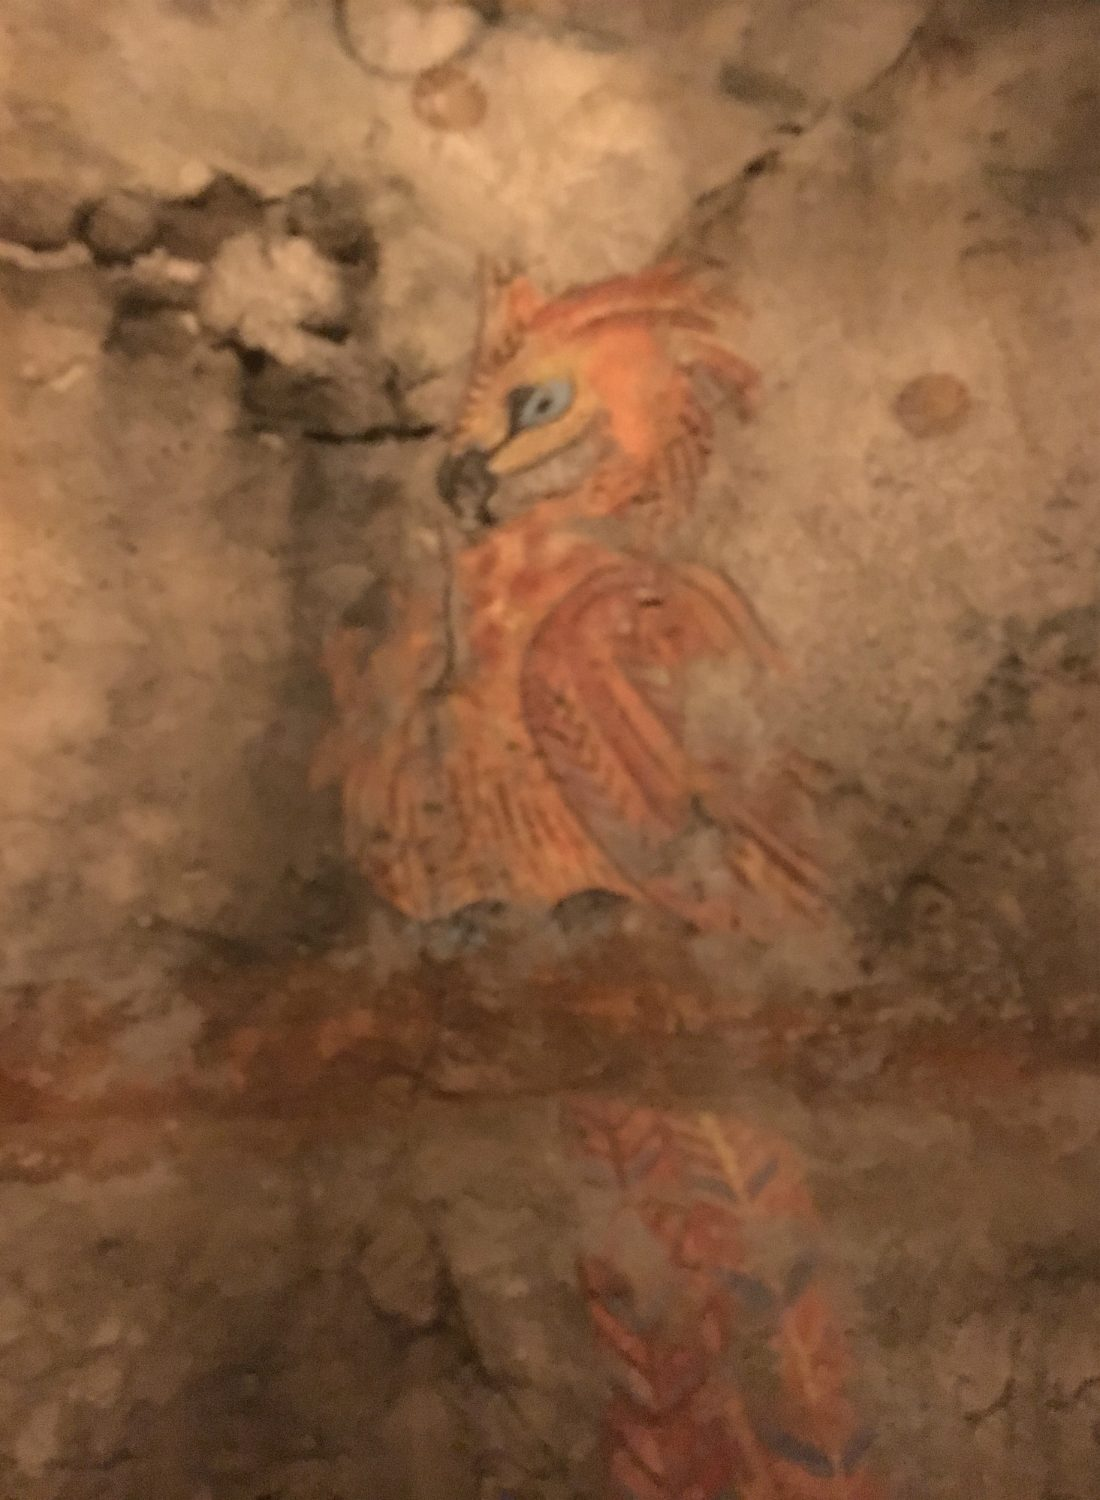 A particularly artistic student must have painted this baby phoenix born again from the ashes.